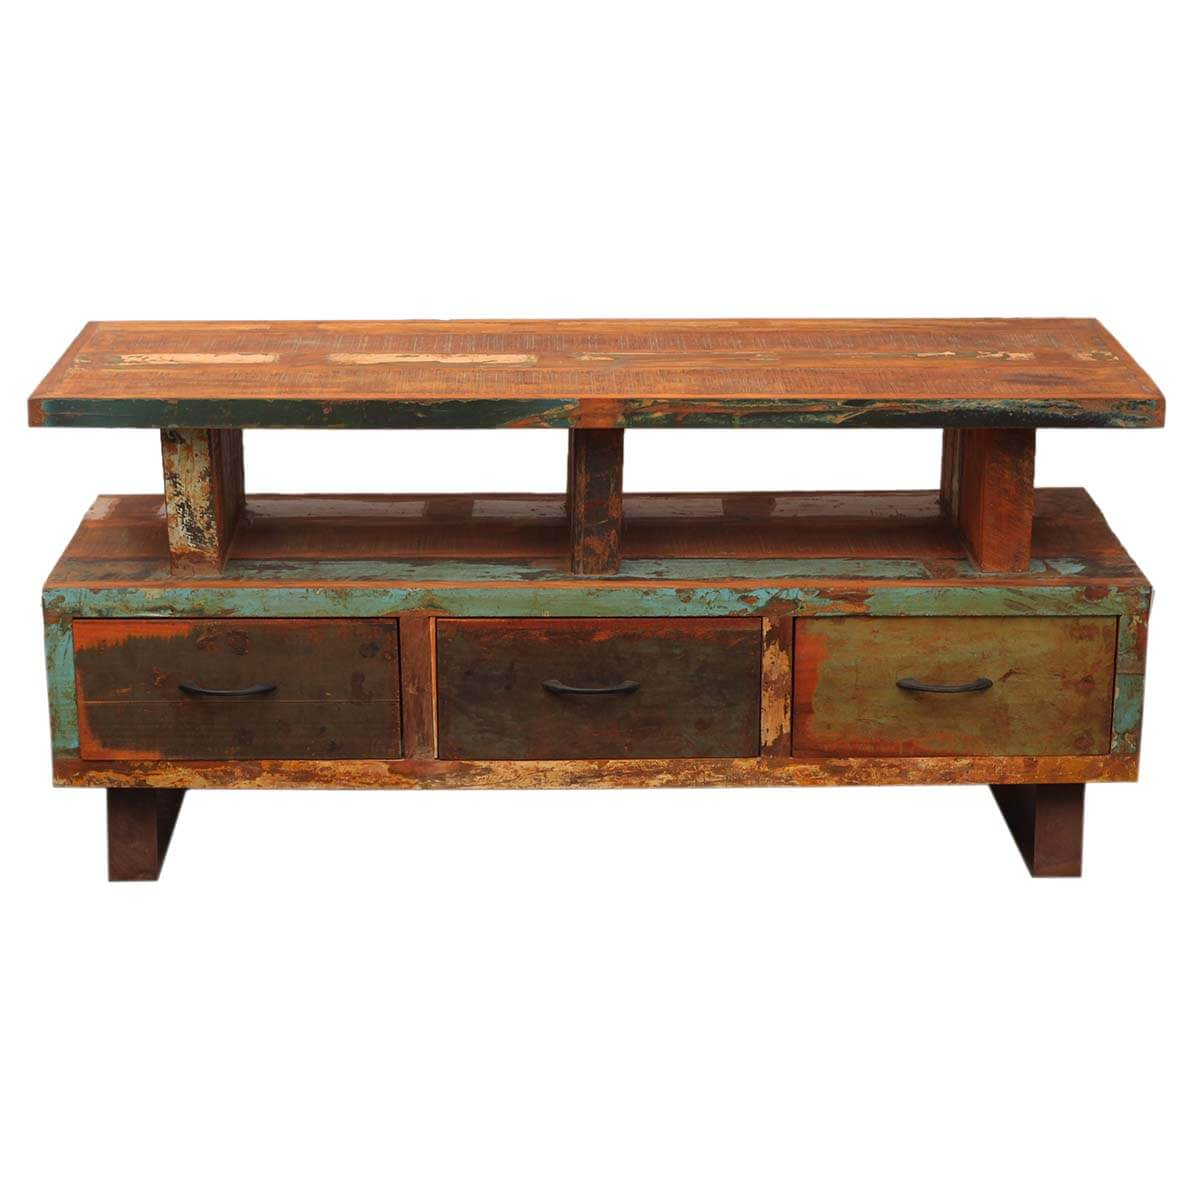 ... Distressed Reclaimed Wood & Iron media console TV stand ... - Industrial Reclaimed Wood & Iron Media Console TV Stand